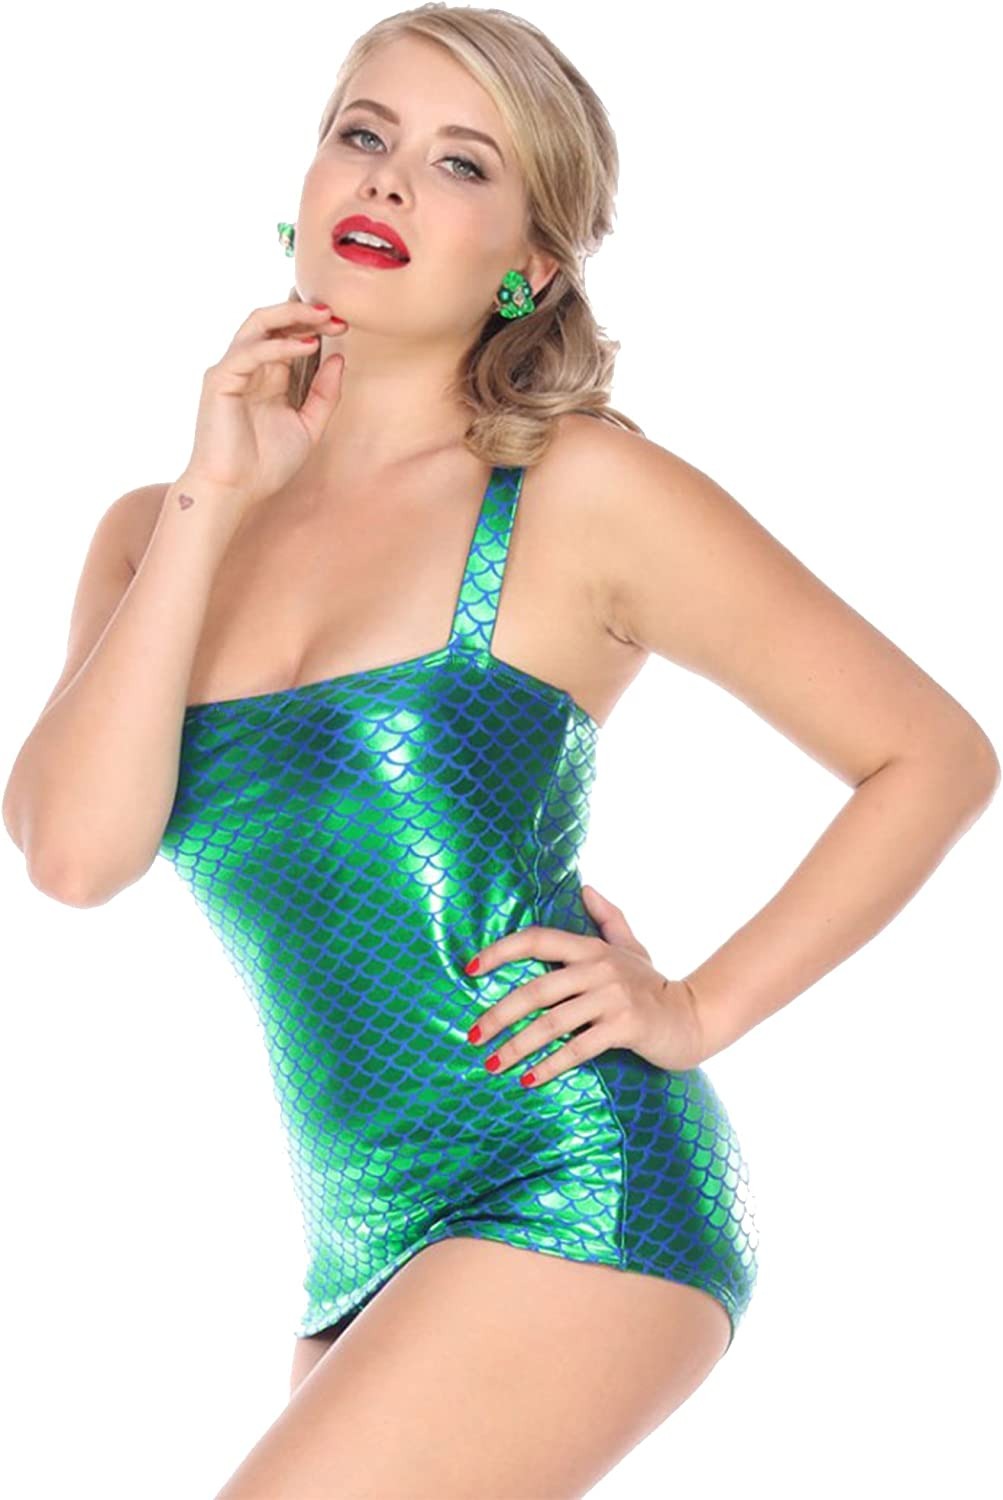 Esther Williams Retro Holographic Mermaid Scale Print One Piece Swimsuit